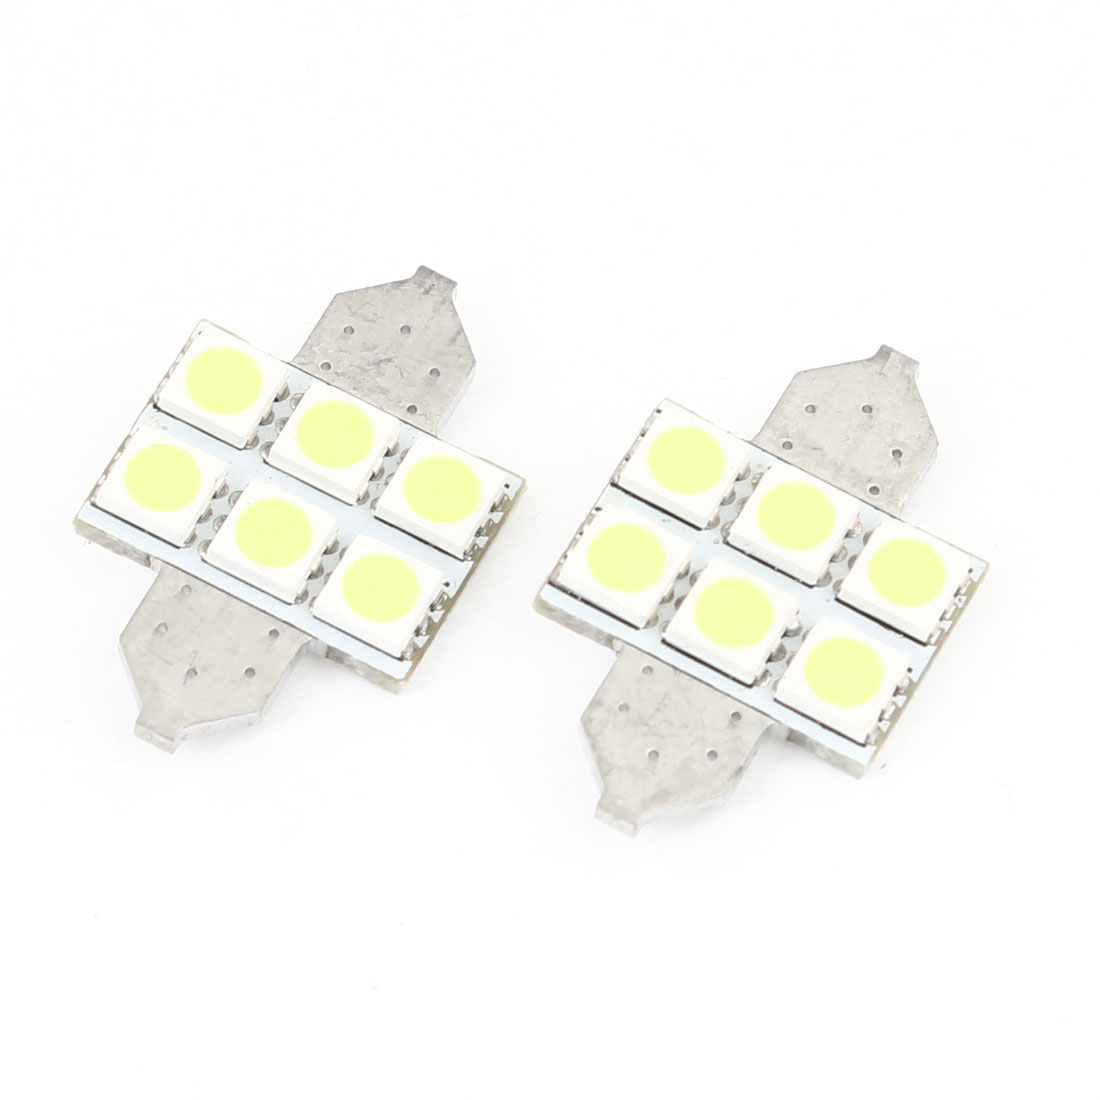 31mm Canbus White 6 5050 SMD DE3021 Festoon LED Light 2 Pcs for Car Roof Lamp